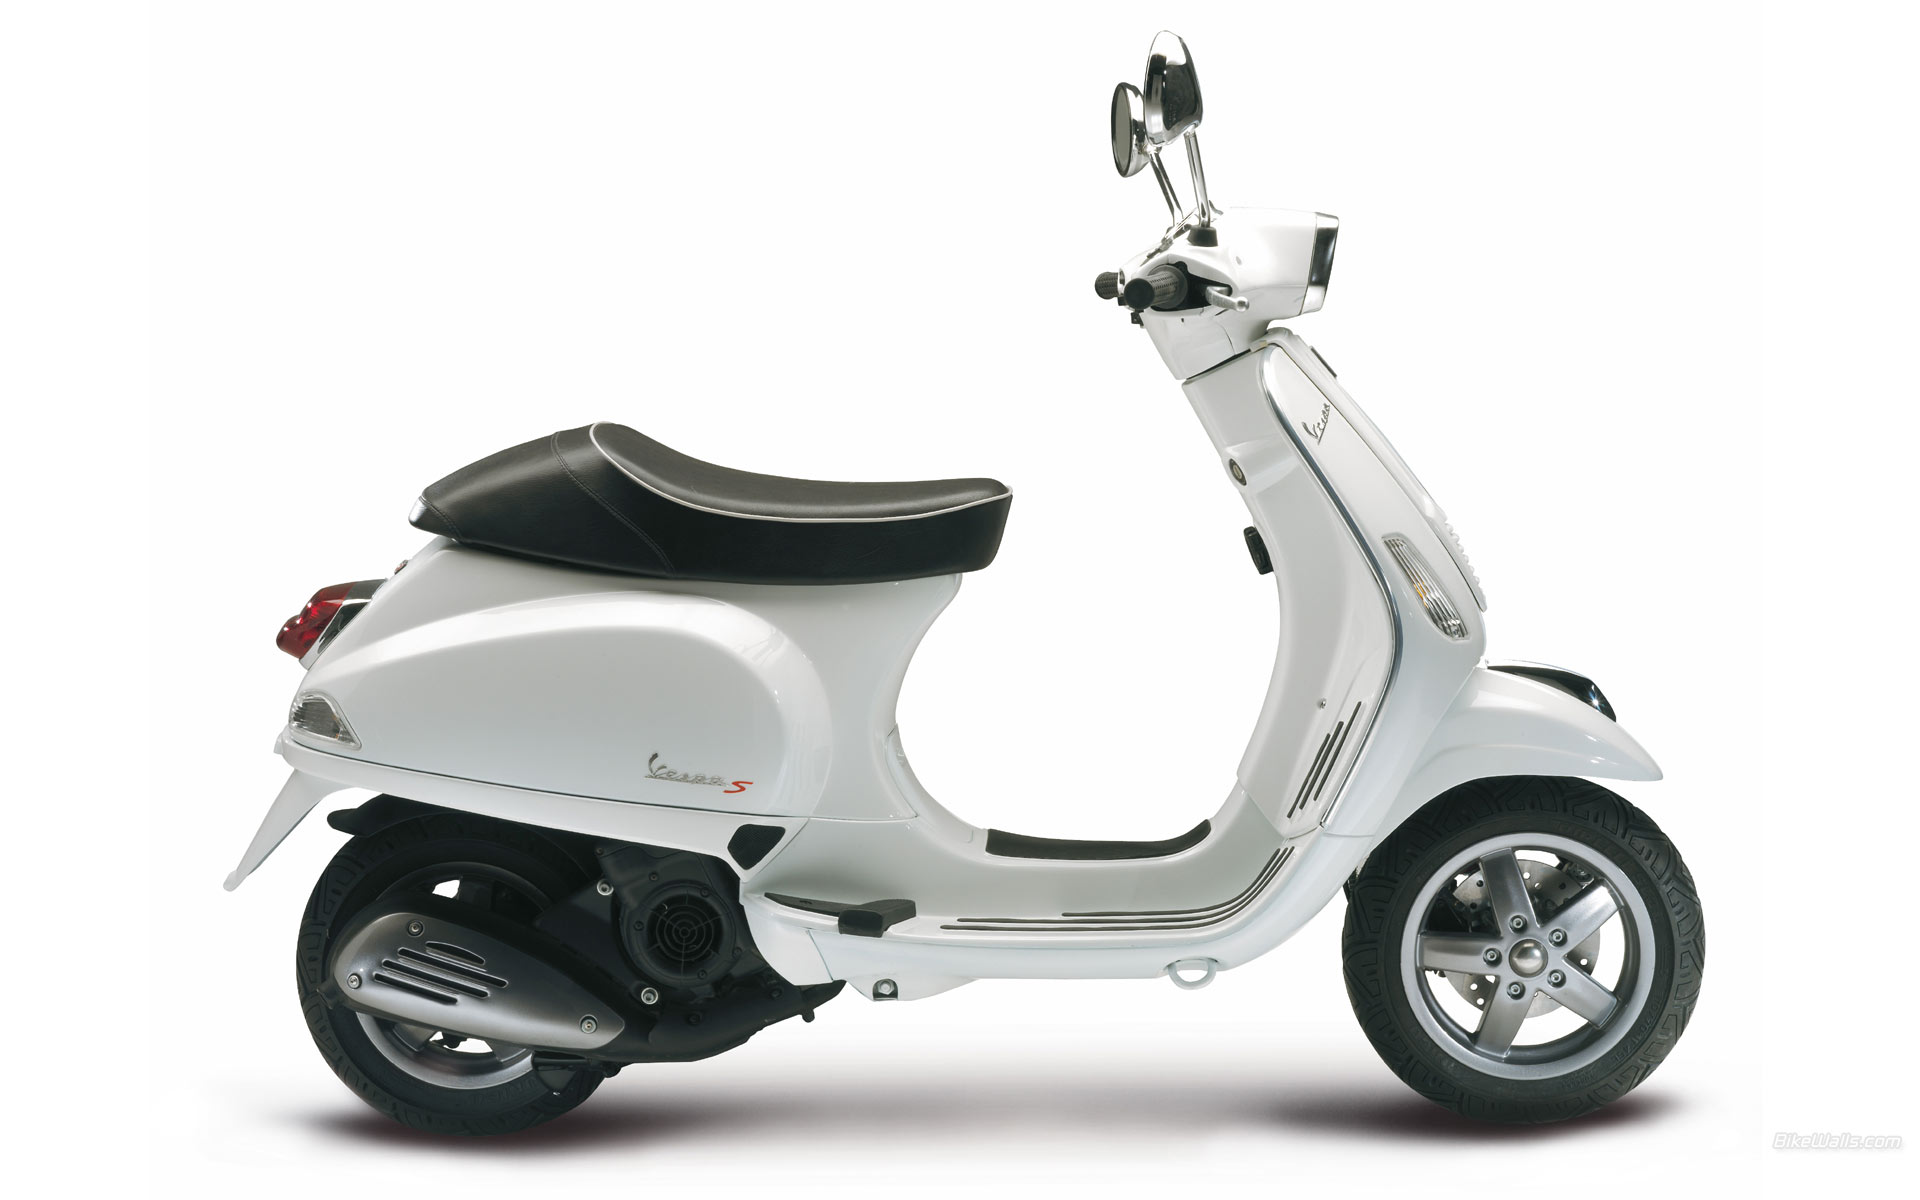 The Piaggio / Vespa Rumor Roundup | ScooterFile